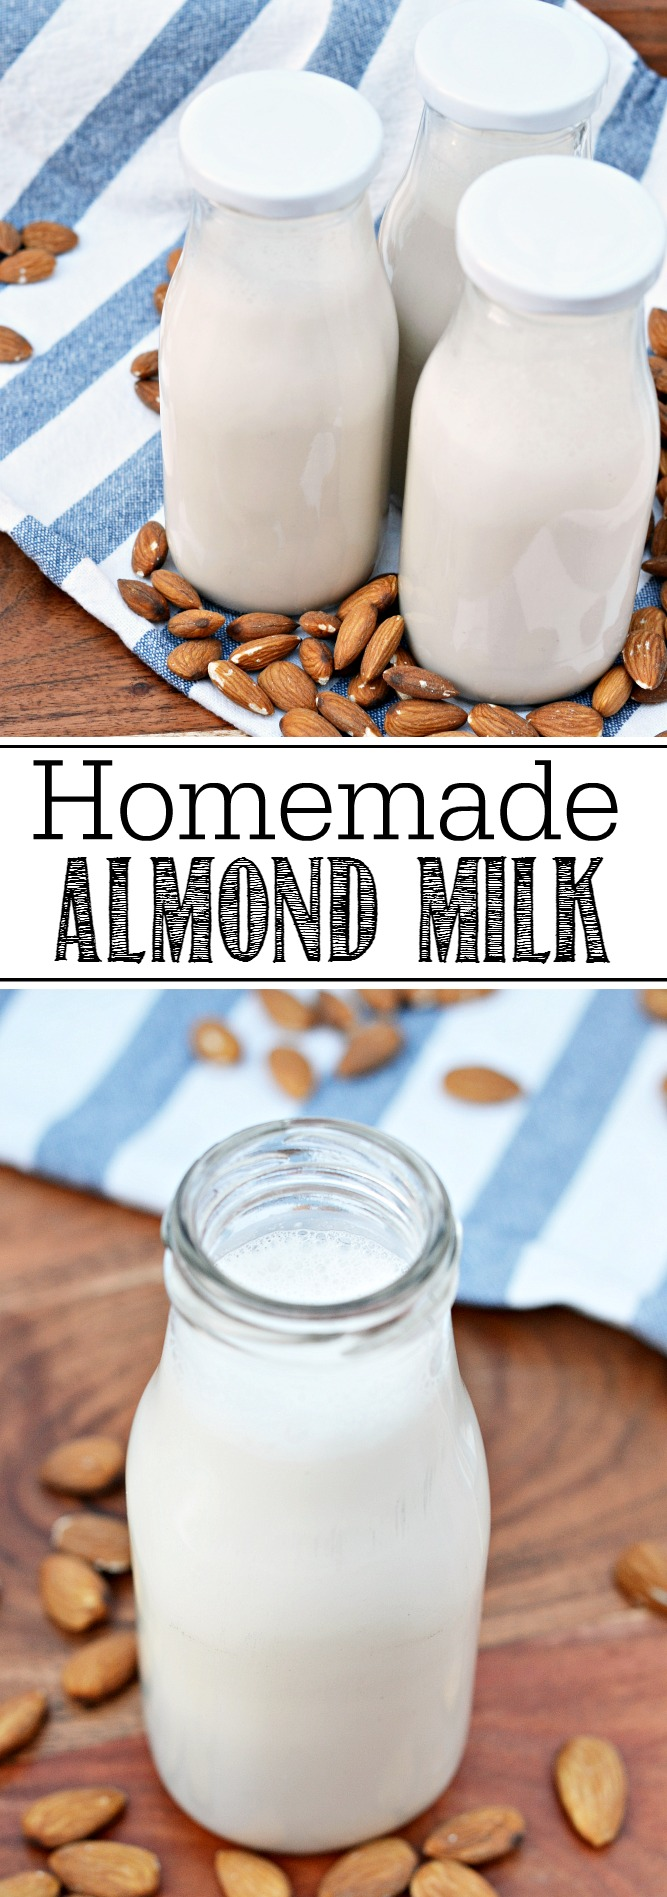 This fresh and creamy almond milk is a tasty alternative to dairy without all of the added ingredients that you would find in the store bought versions. So easy to make!